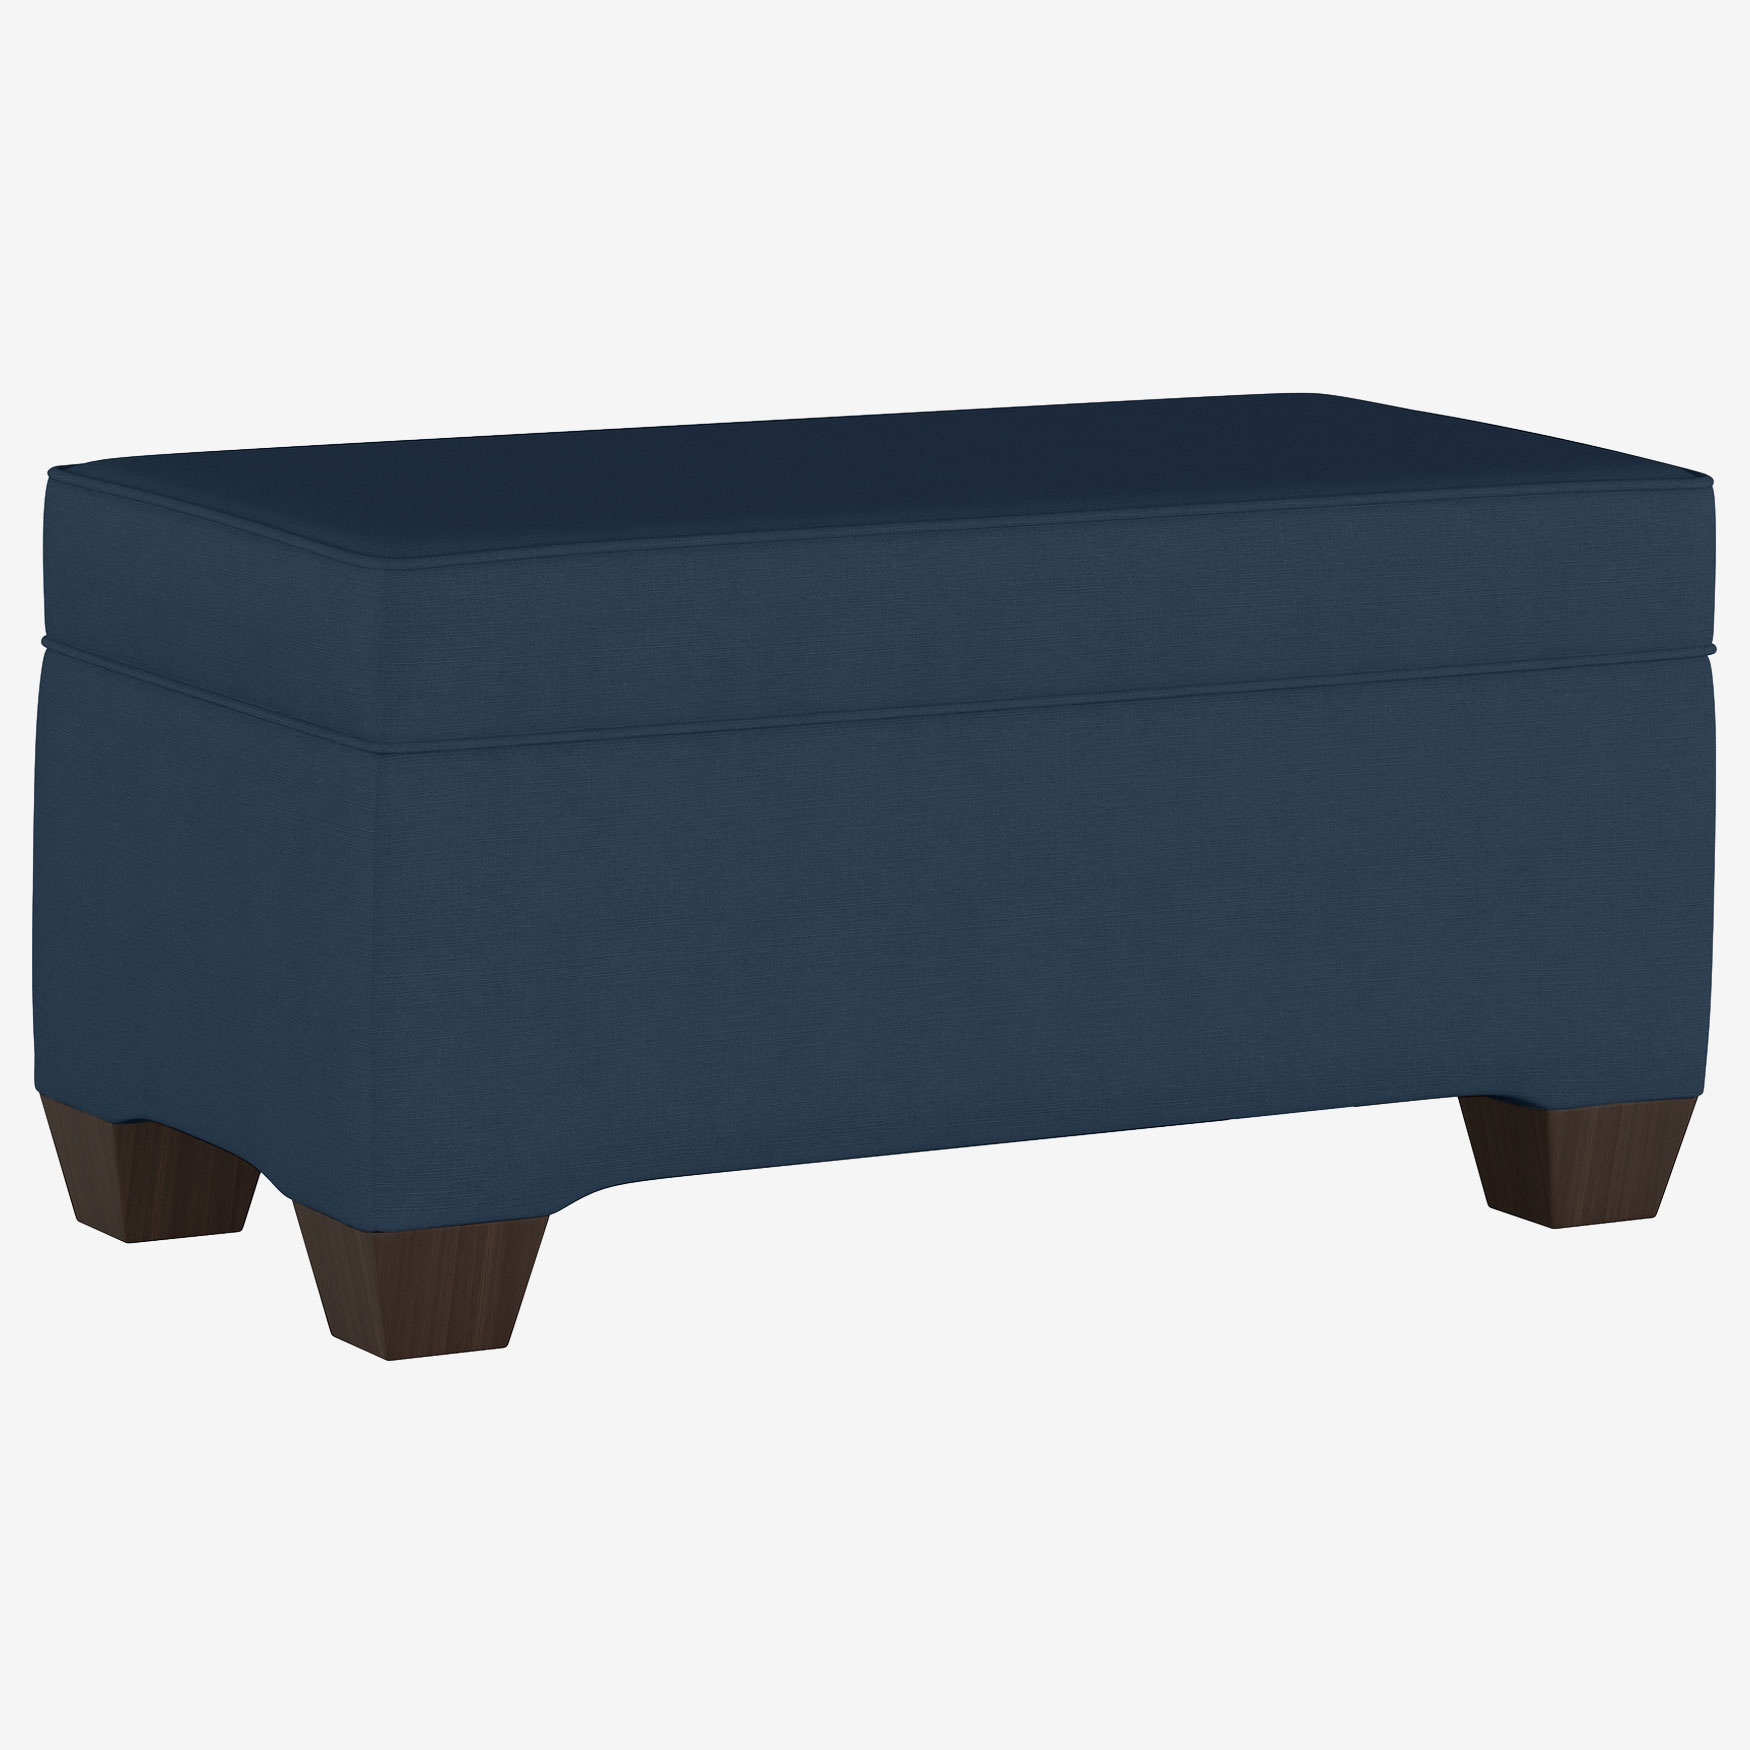 Upholstered Storage Bench in Linen,